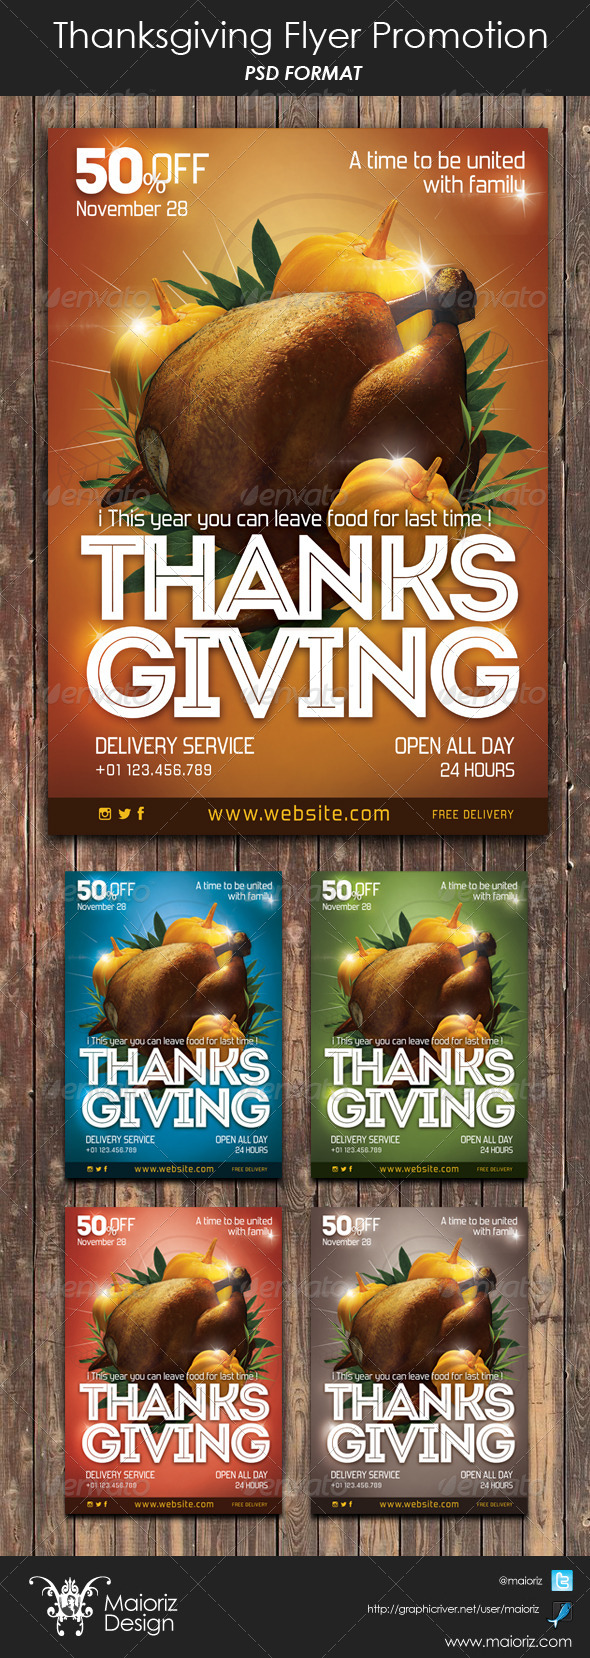 Thanksgiving Flyer Promote - Restaurant Flyers